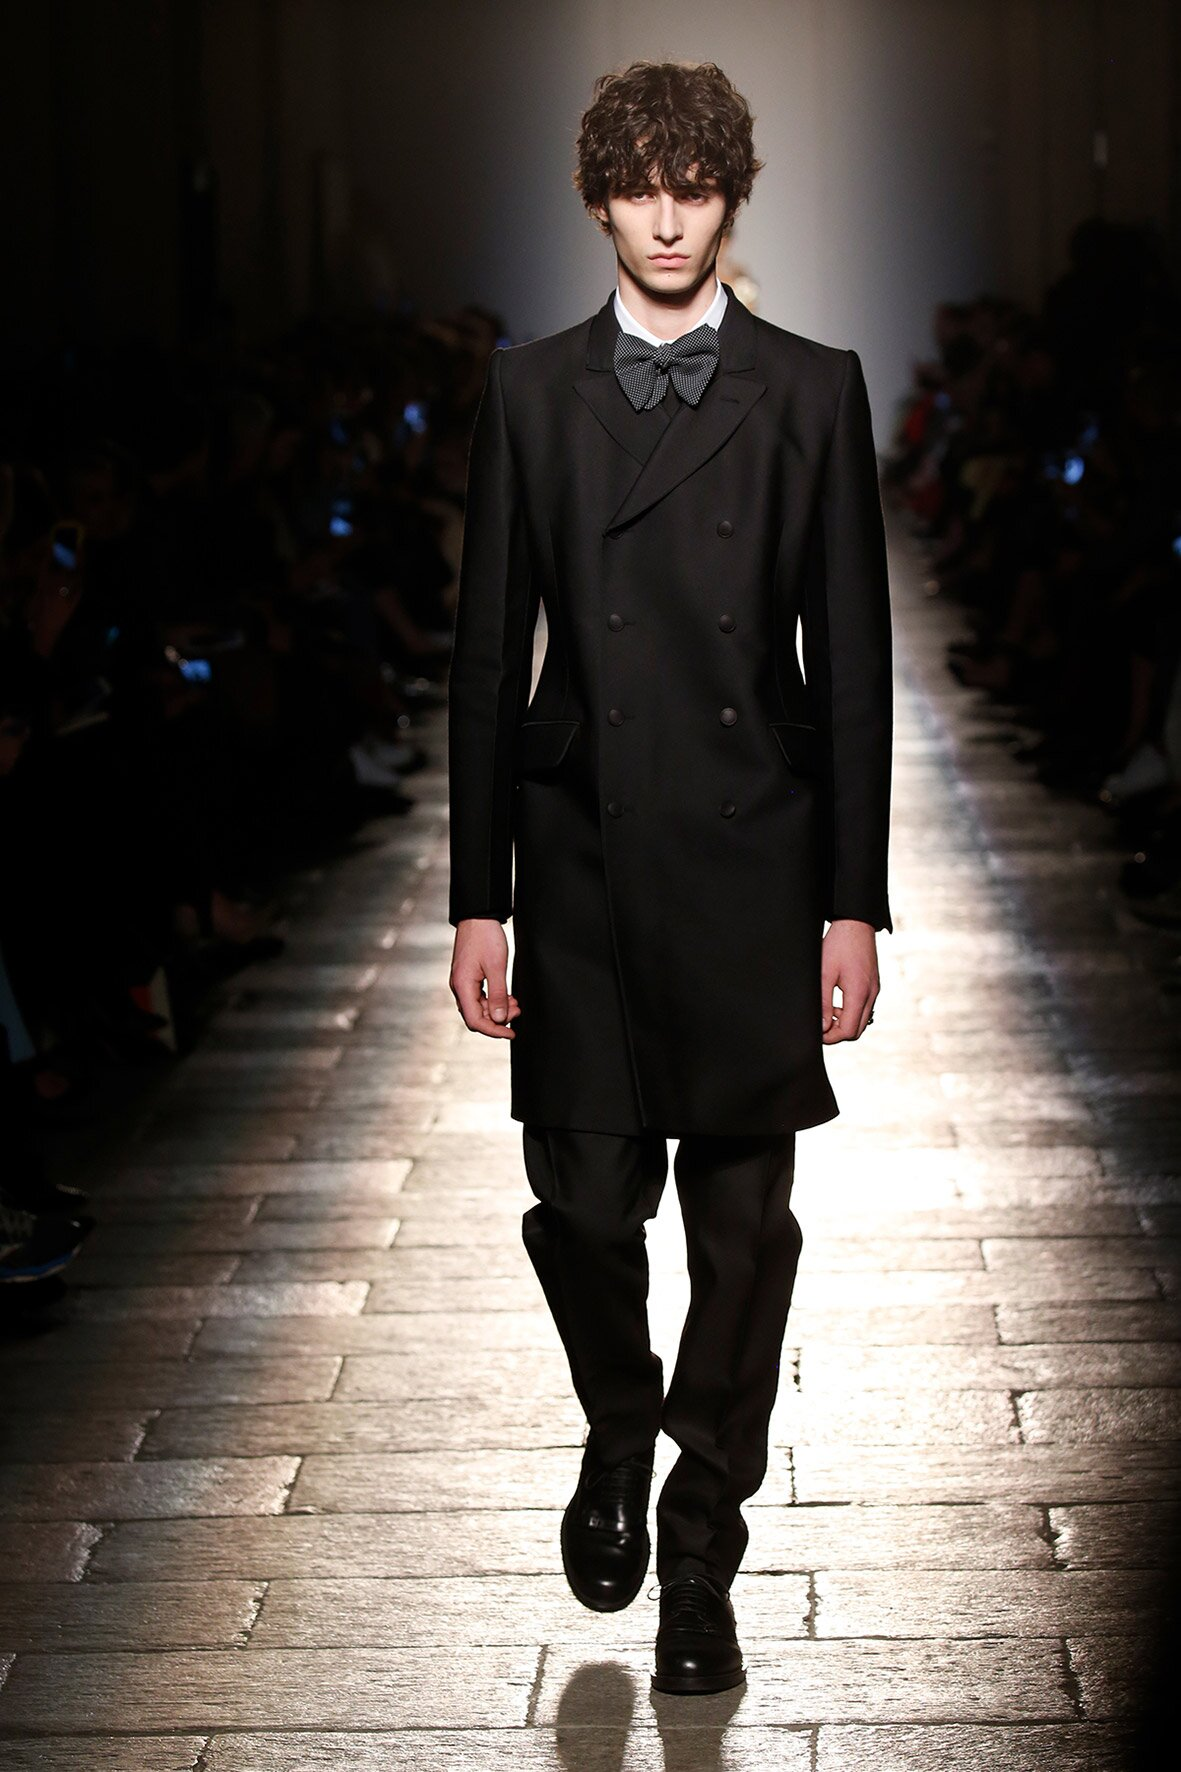 Fashion Man Model Bottega Veneta Runway